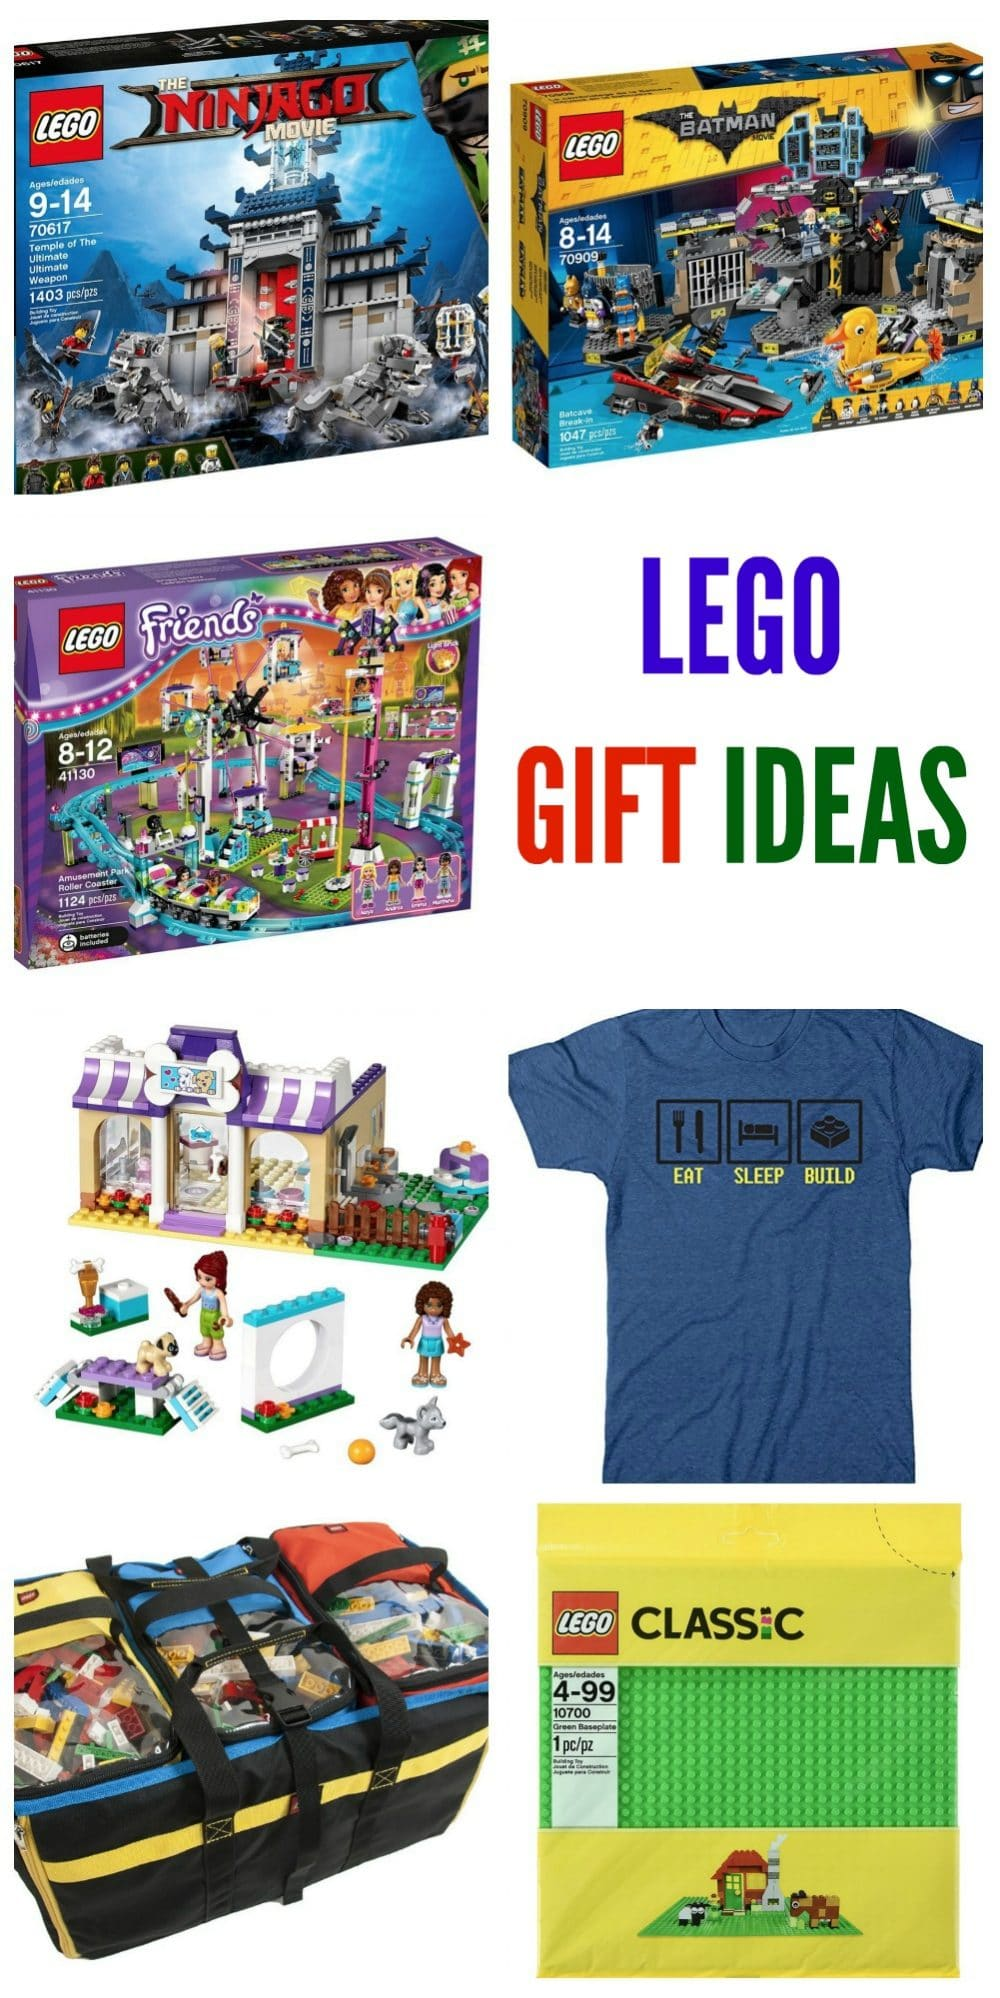 LEGO Gift Ideas for everyone on your list